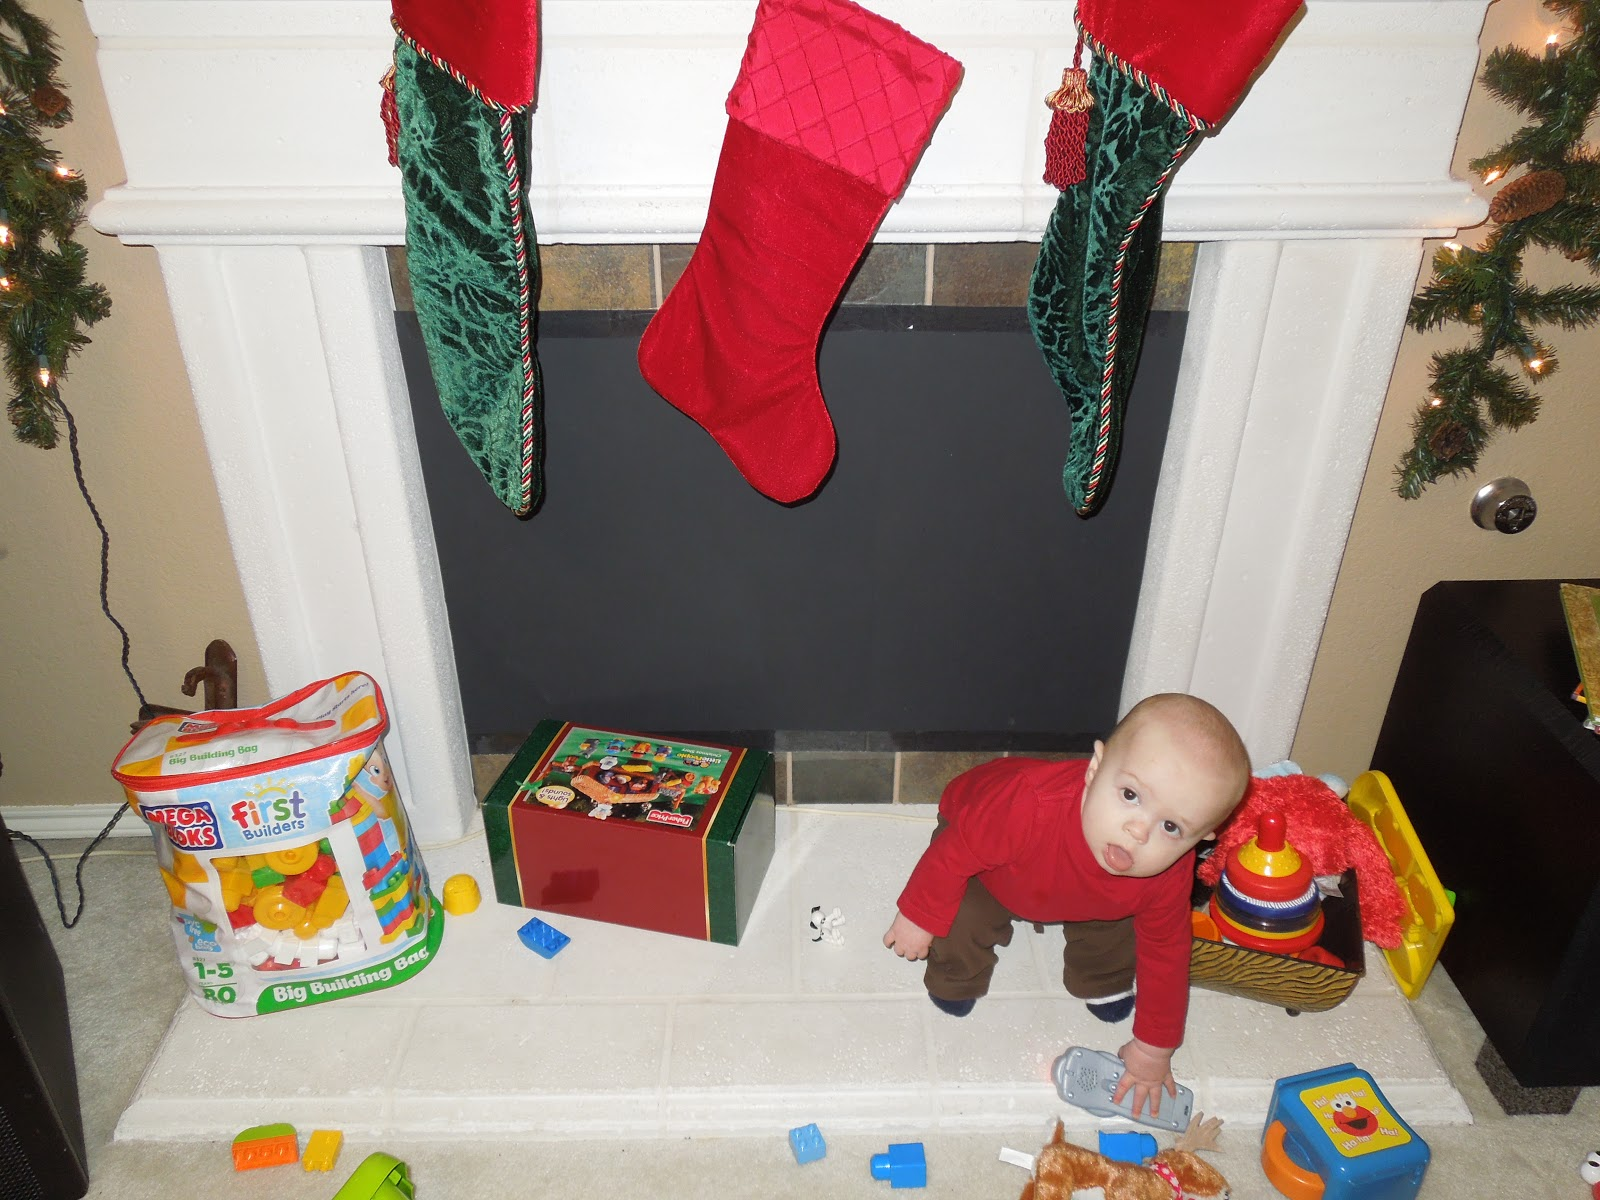 Baby proofing your house for dirt cheap joyfully prudent baby proofing your house for dirt cheap ccuart Image collections